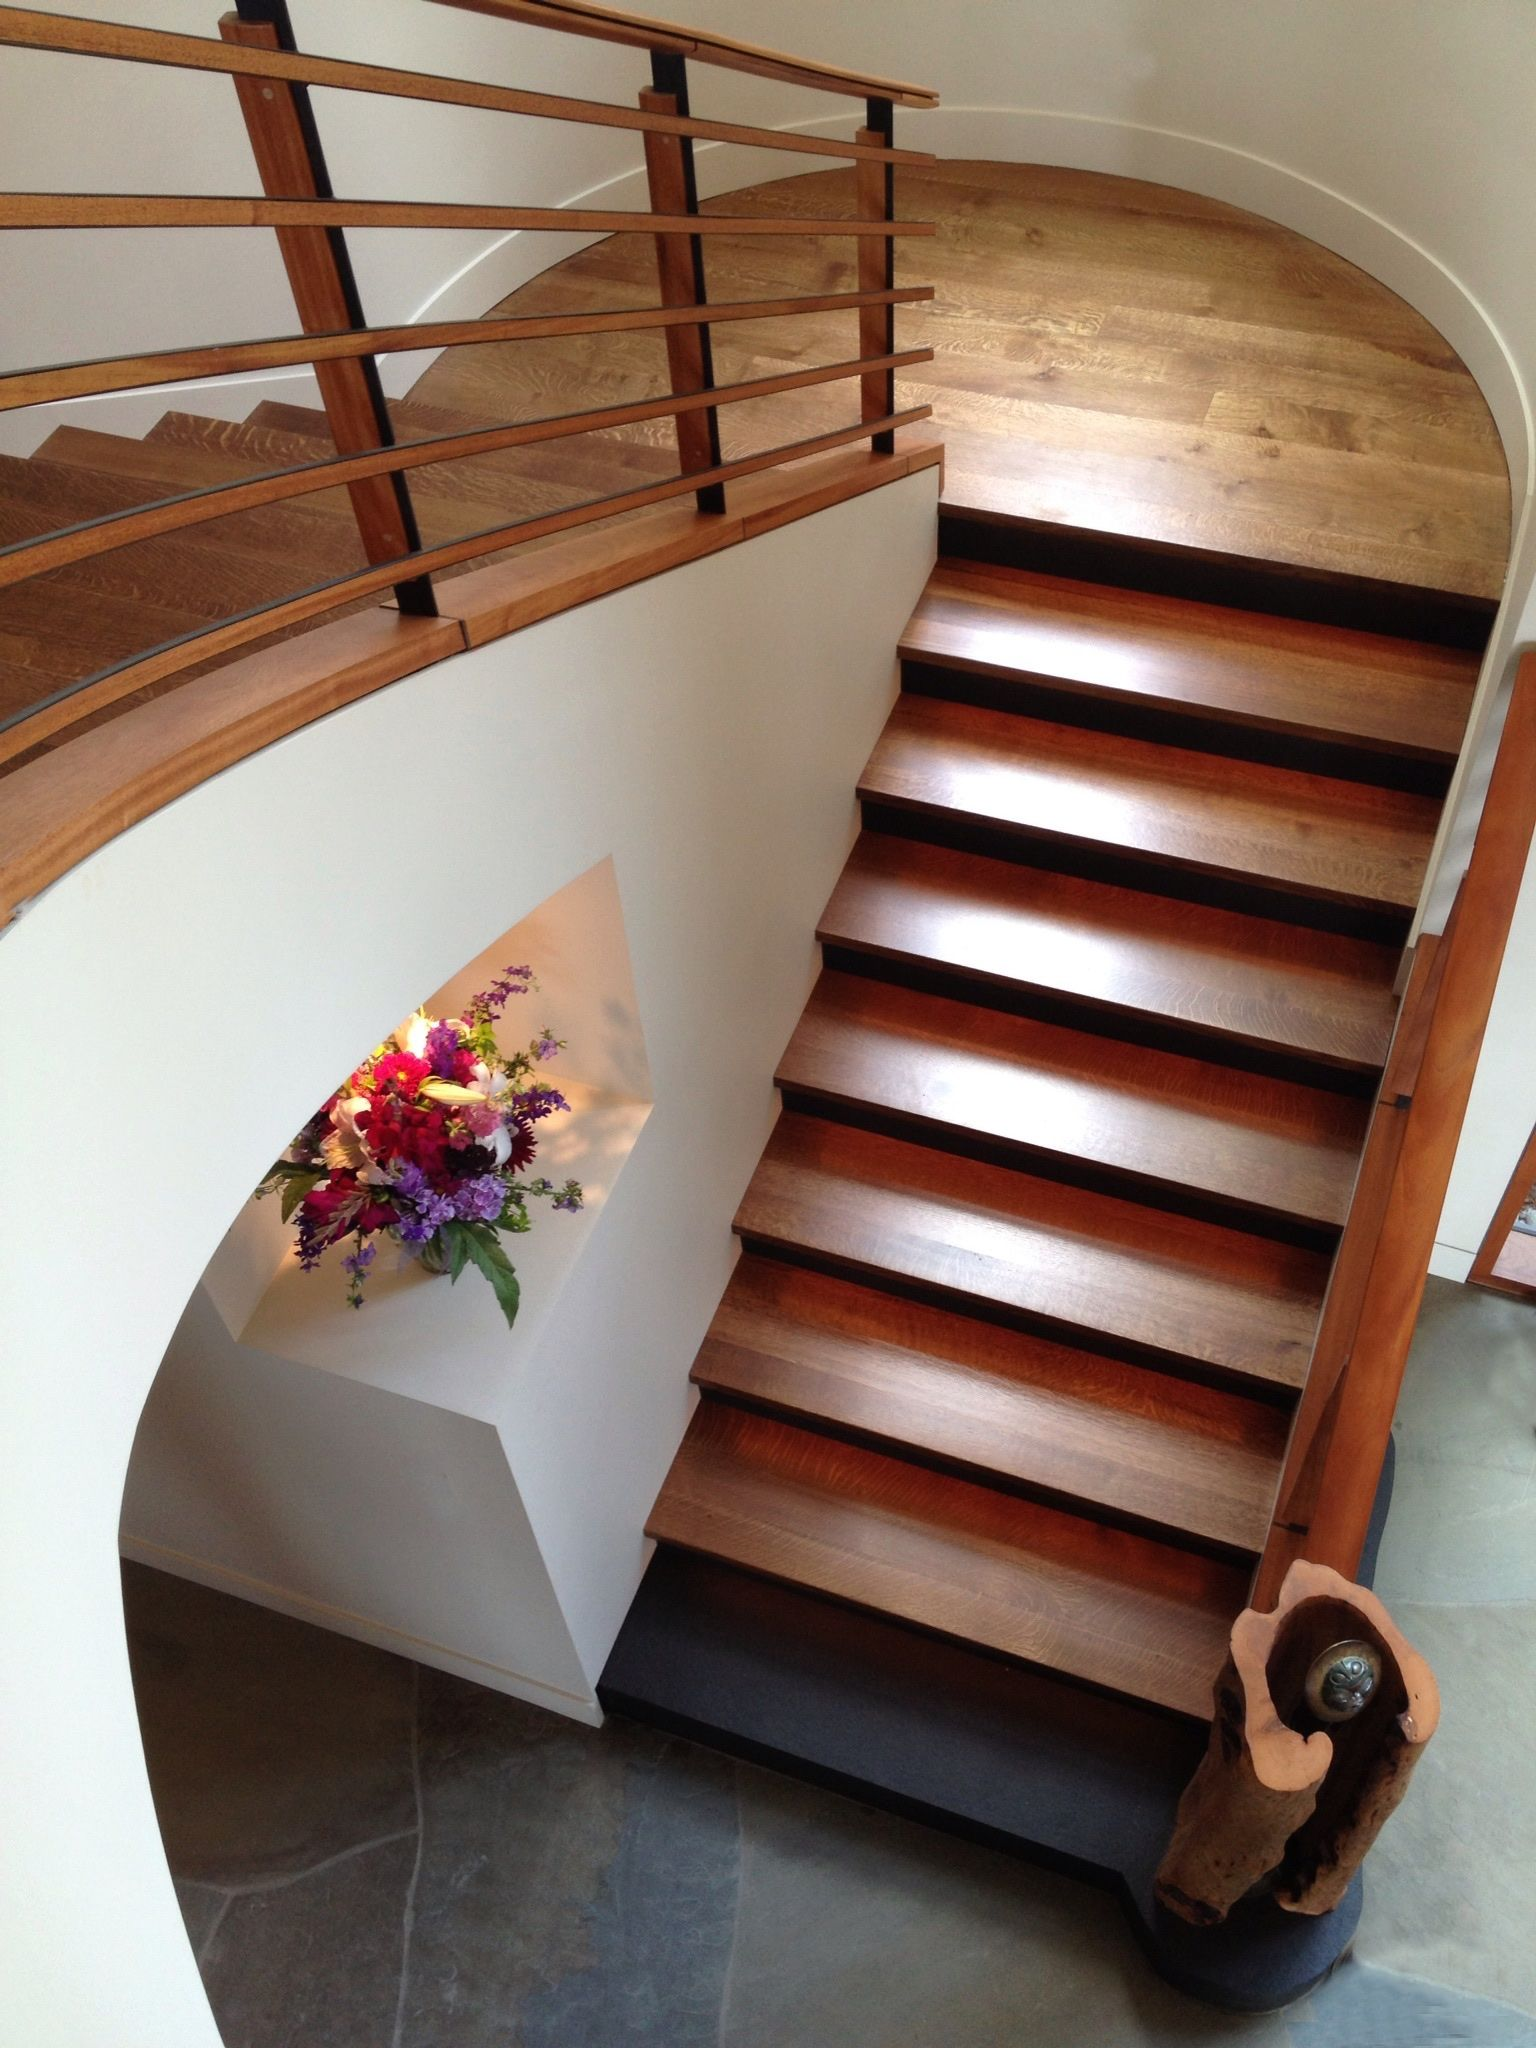 Rift & Quartered white oak stairs